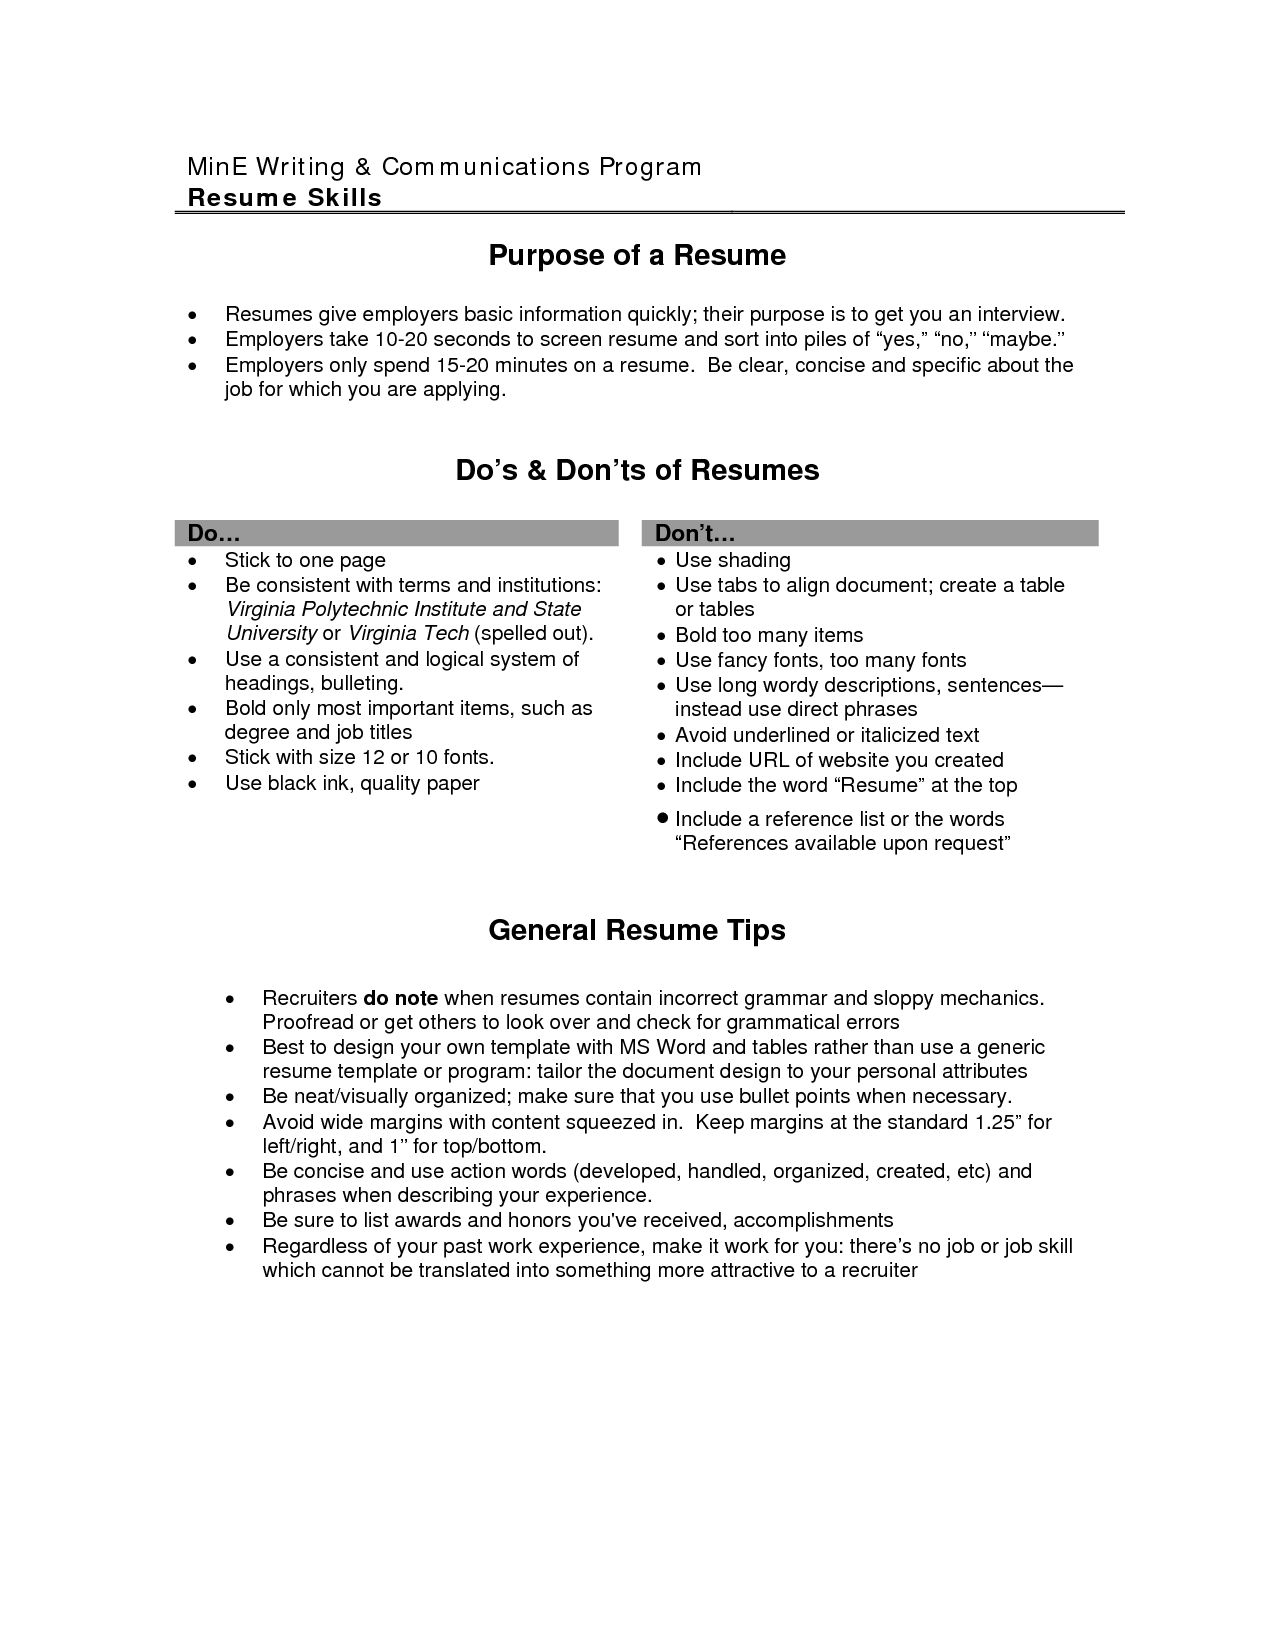 An Objective For A Resume Top Resume Skills Entry Level Template The Create Your Building